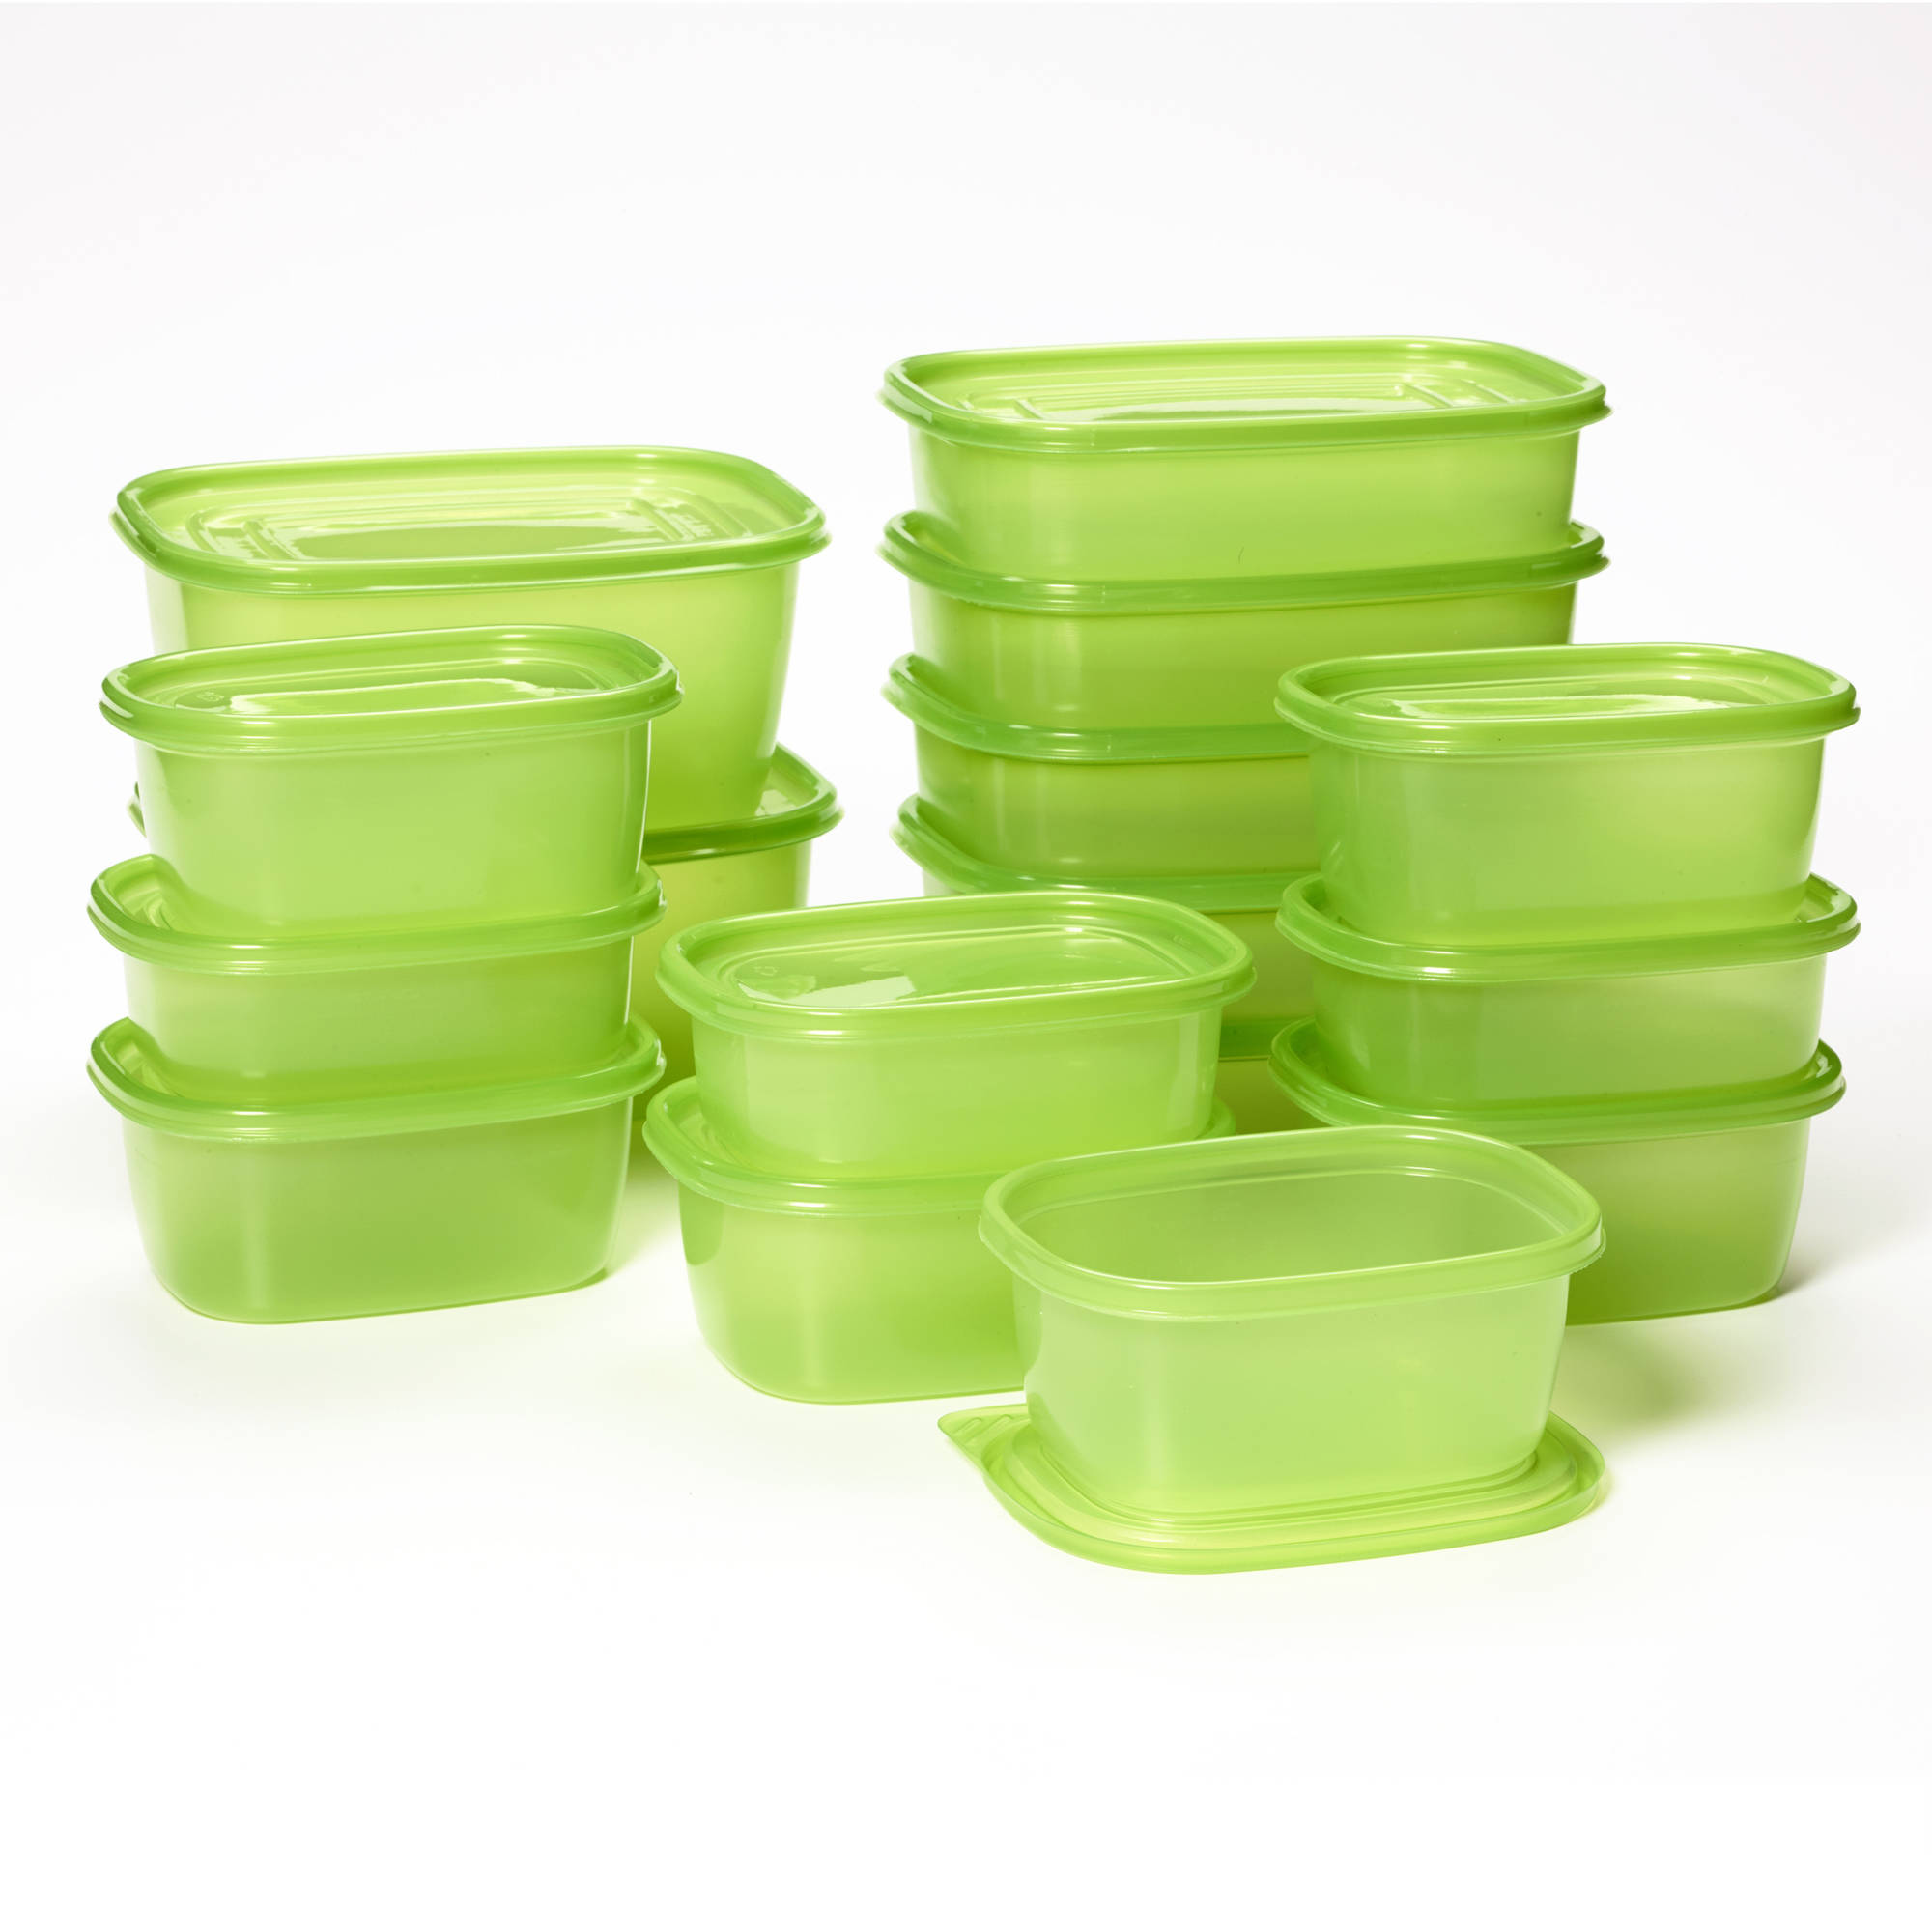 Debbie Meyer Ultralite Greenboxes 32-Piece Set